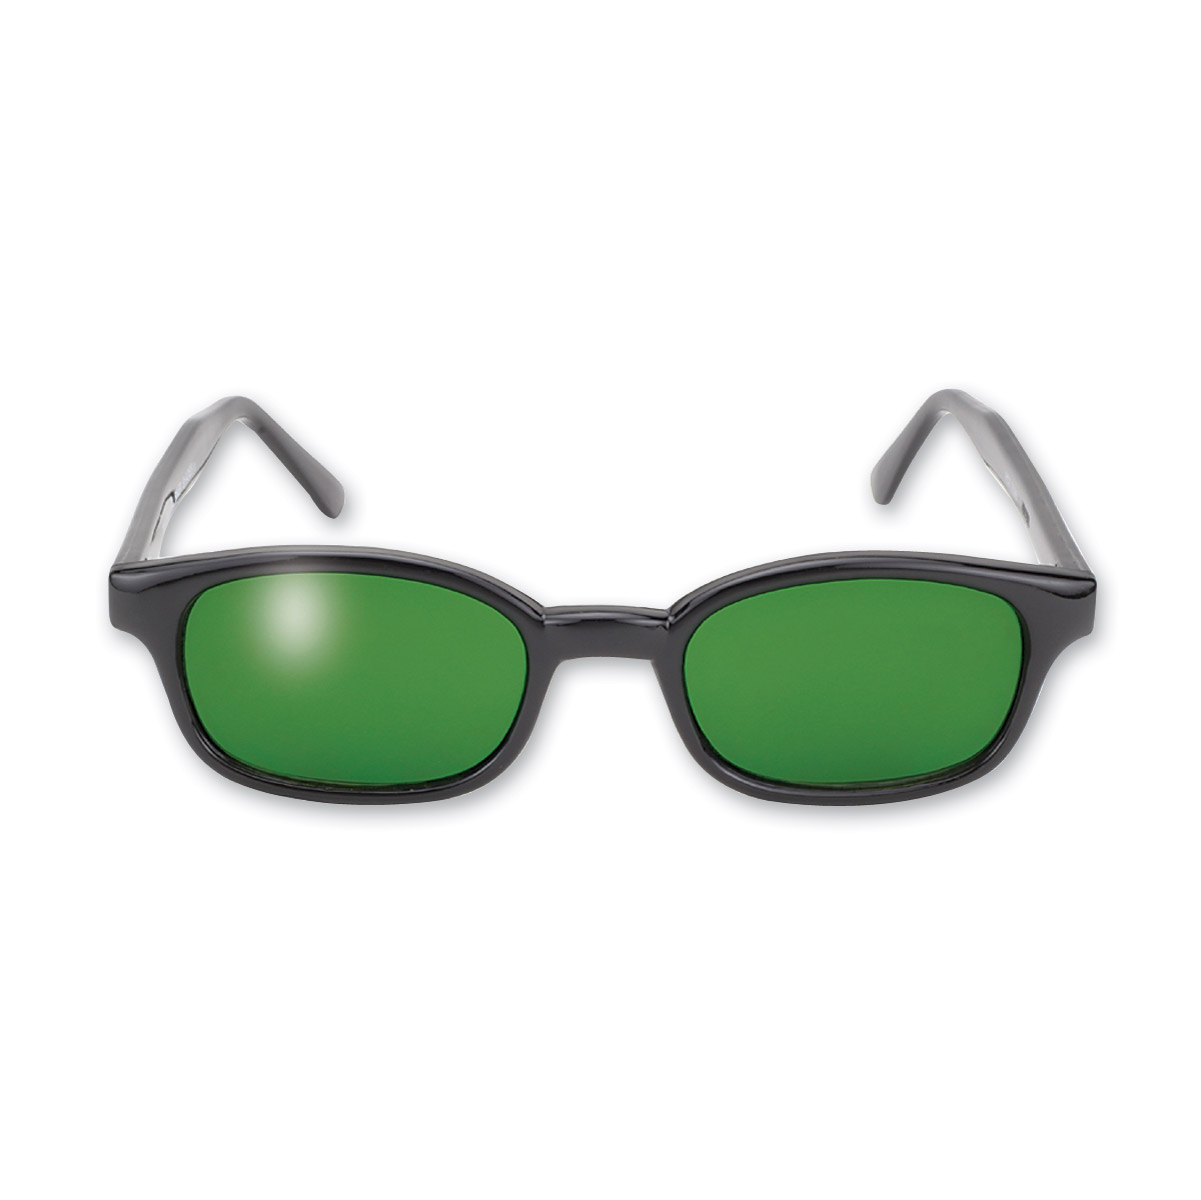 KD's Sunglasses - Black Frame with Dark Green Lens